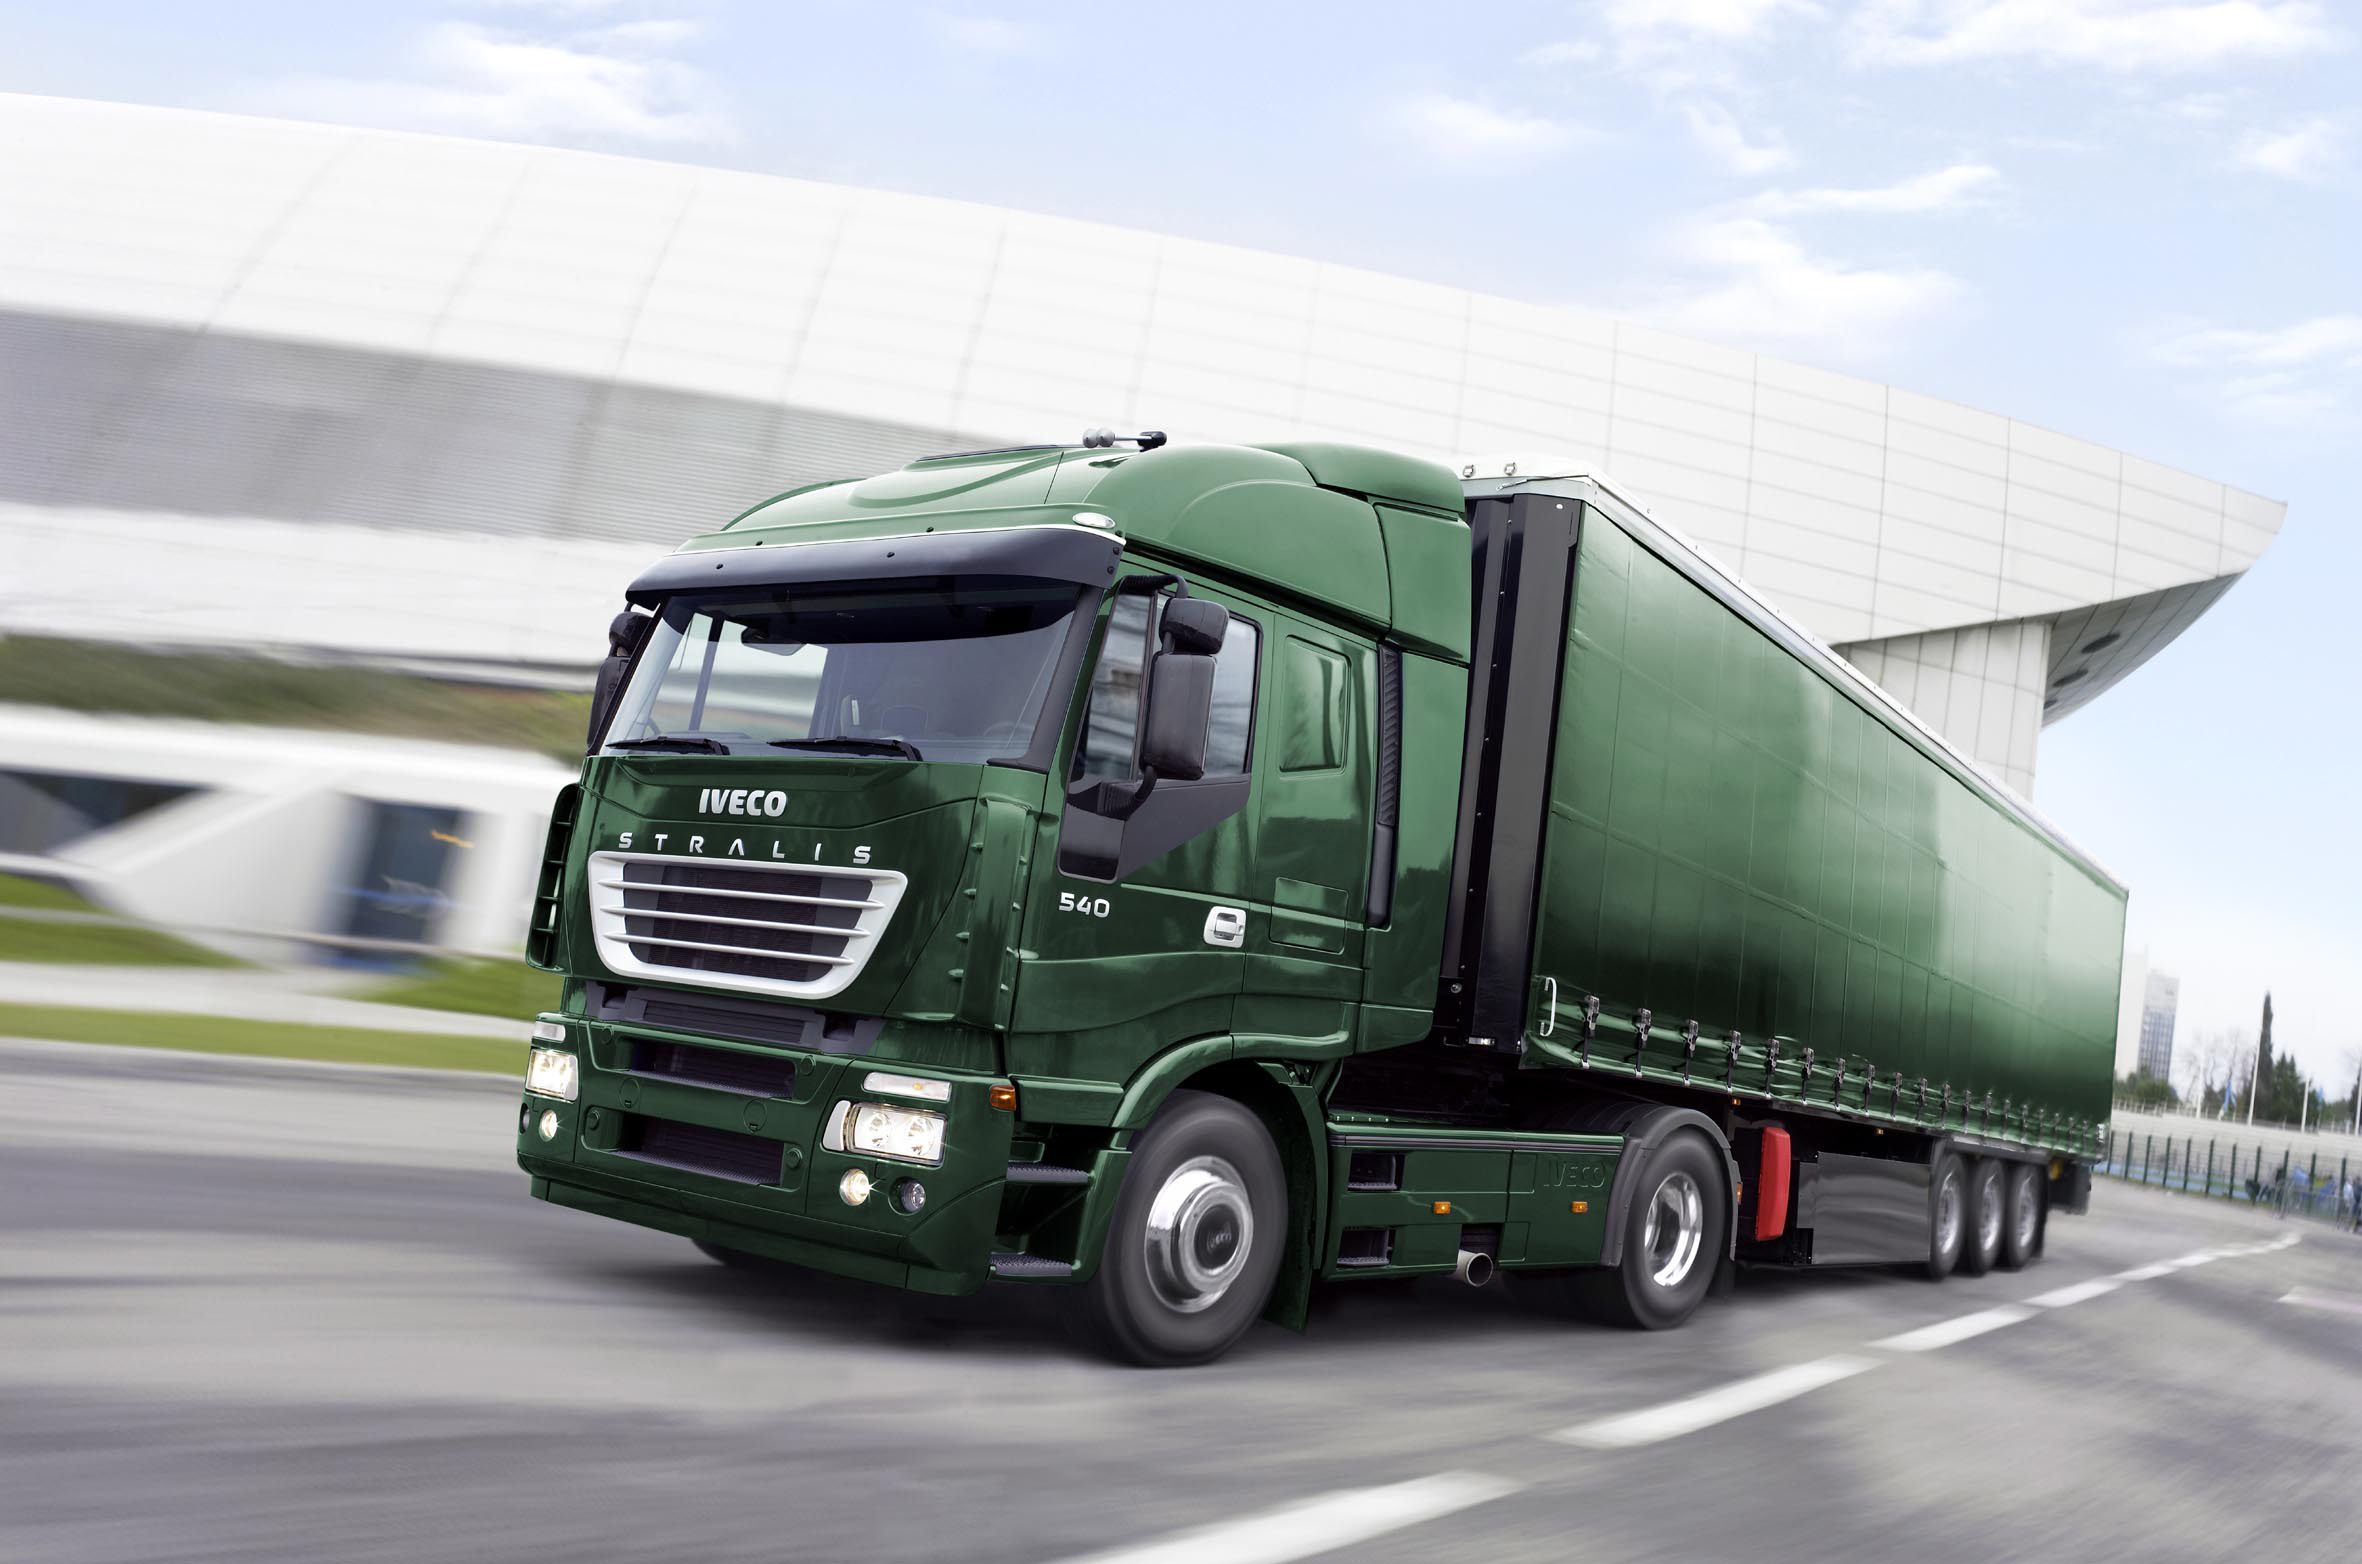 IVECO Stralis picture # 40170 | IVECO photo gallery | CarsBase.com